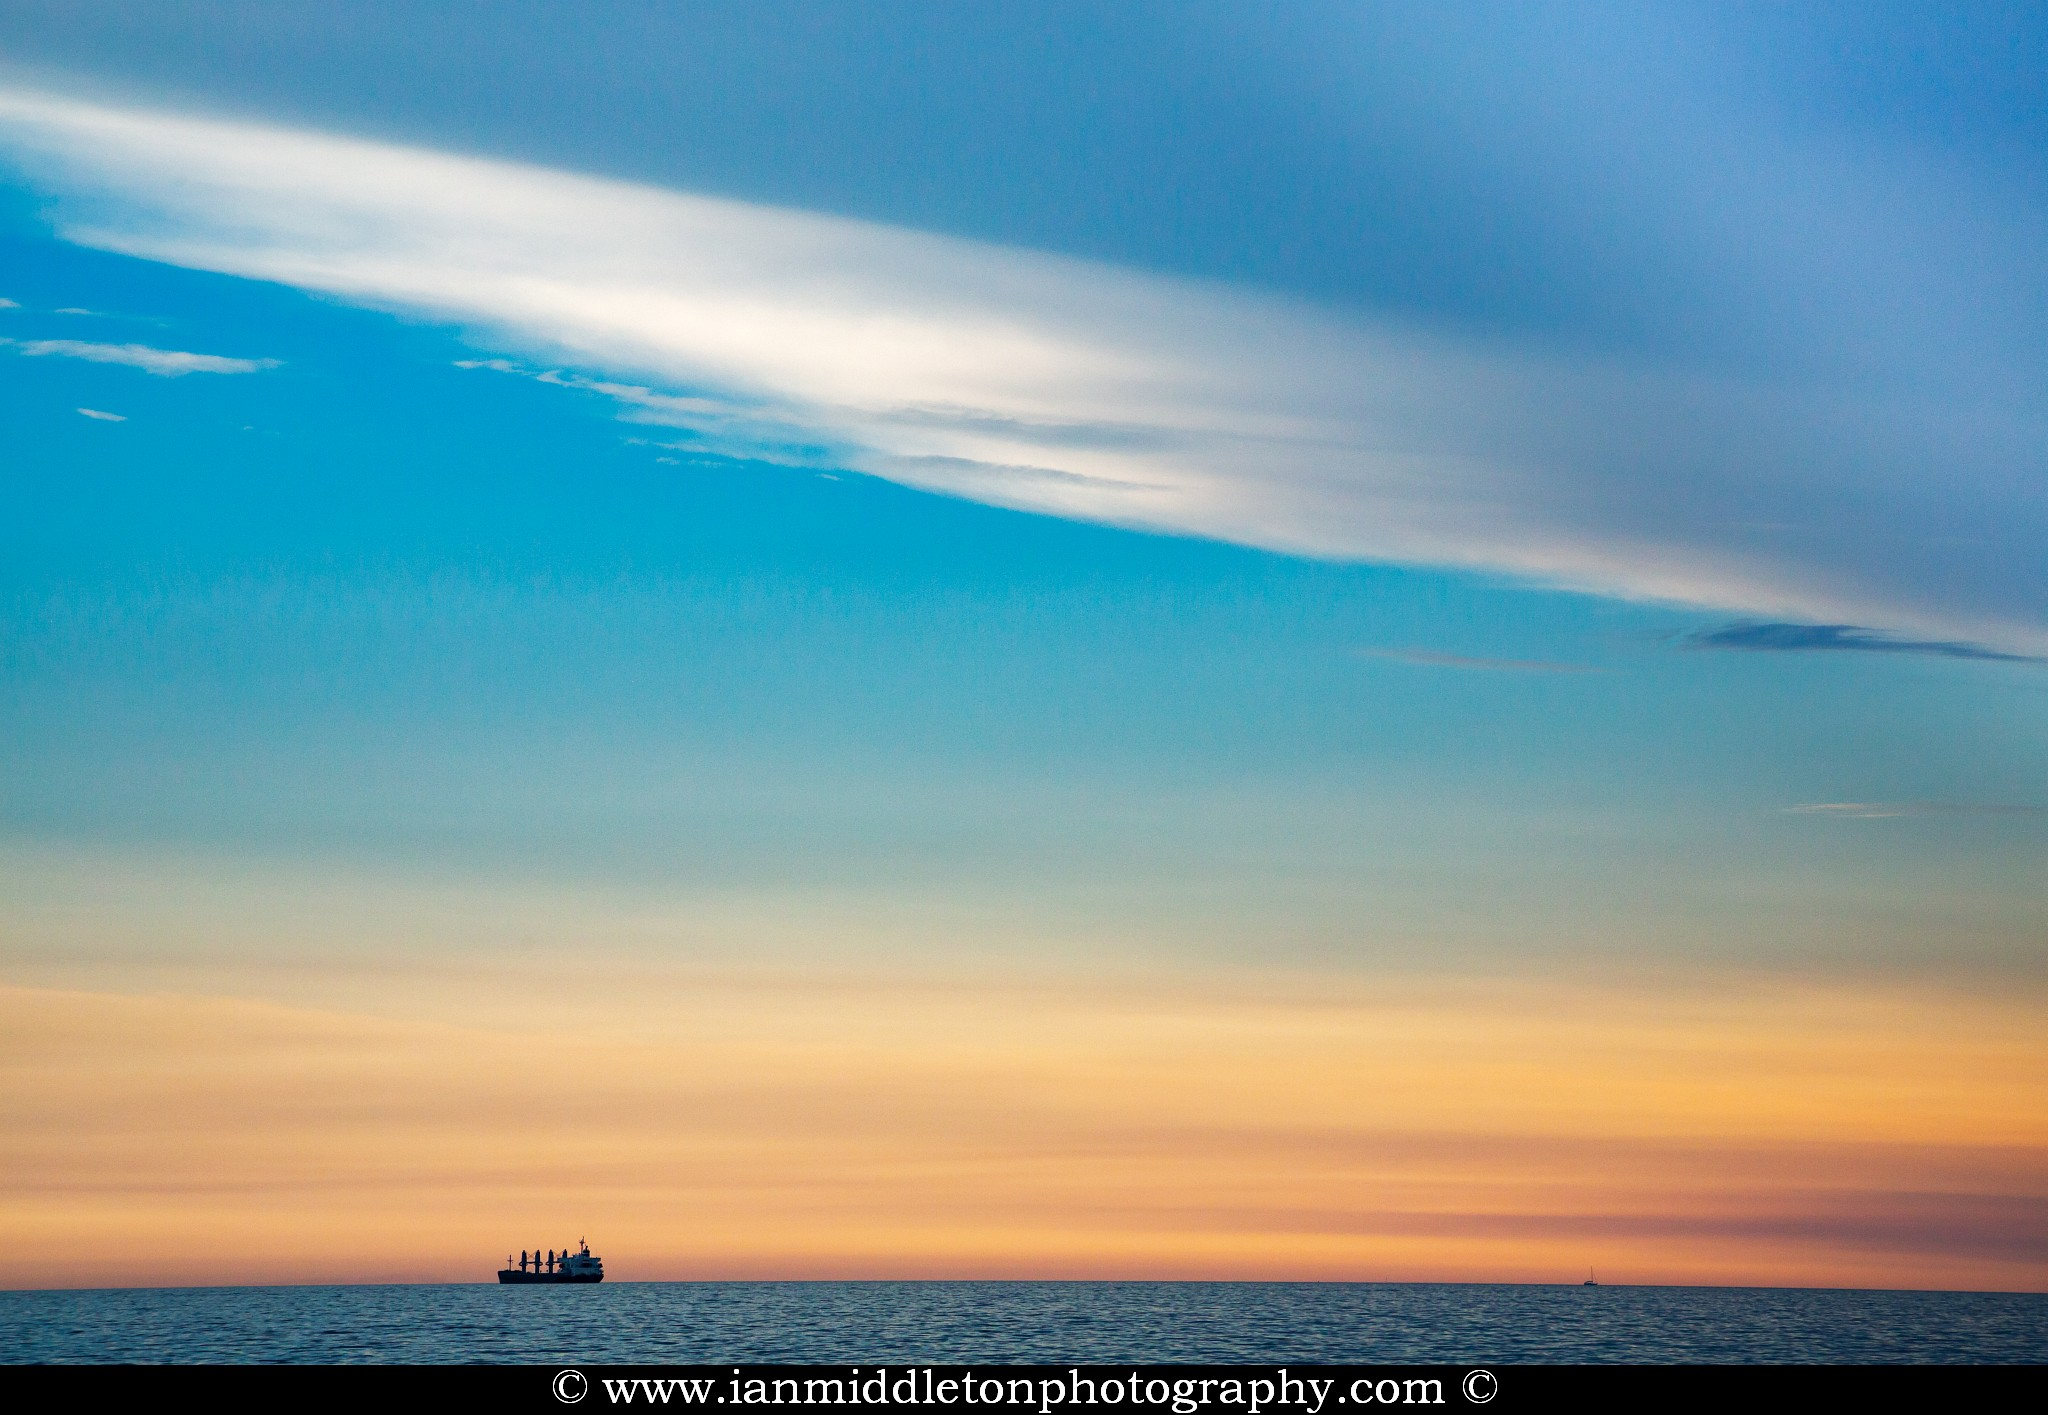 Cargo ship entering trieste Bay, Italy.